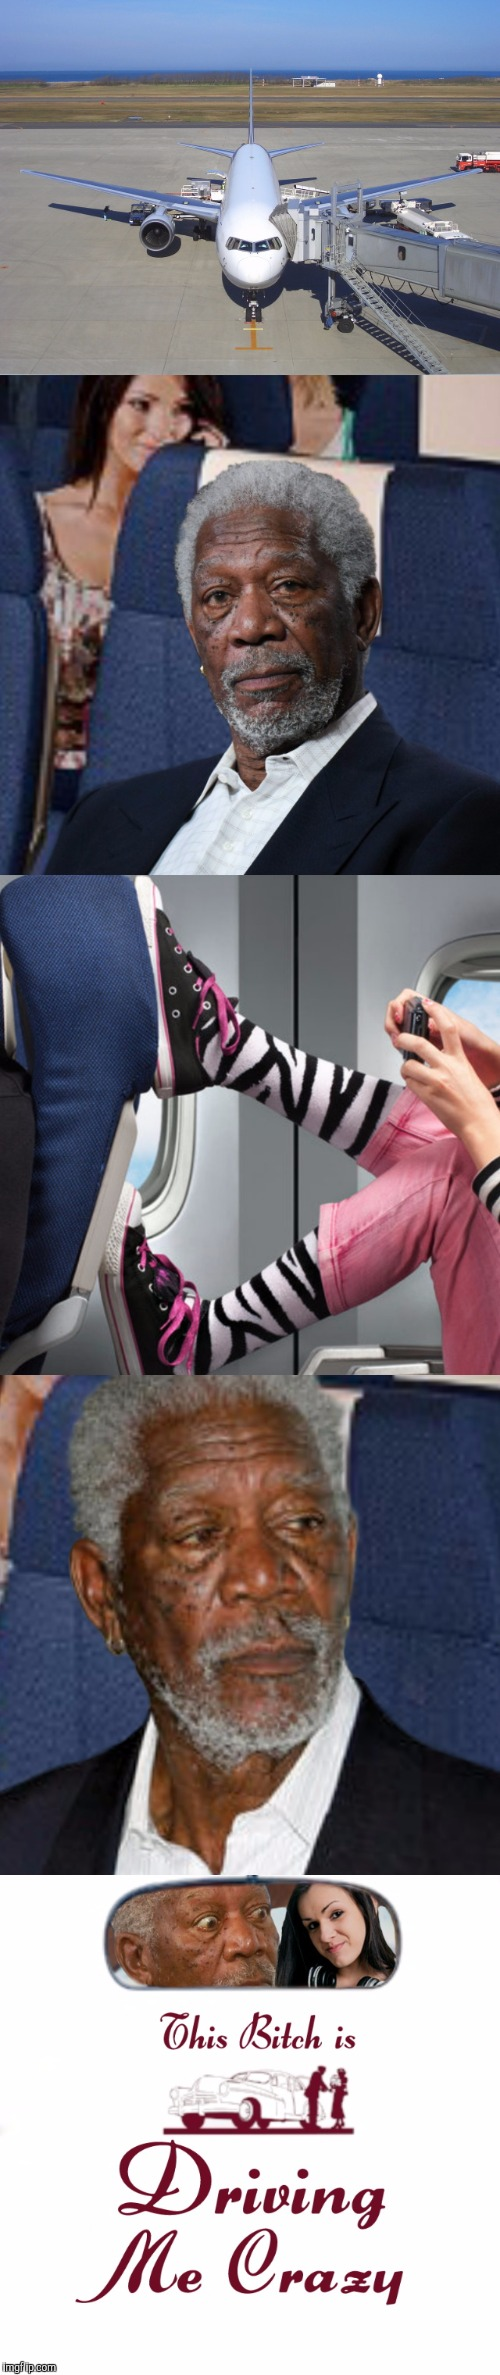 "BOUT TIME FOR SOME ""LEAN ON ME"" ACTION 